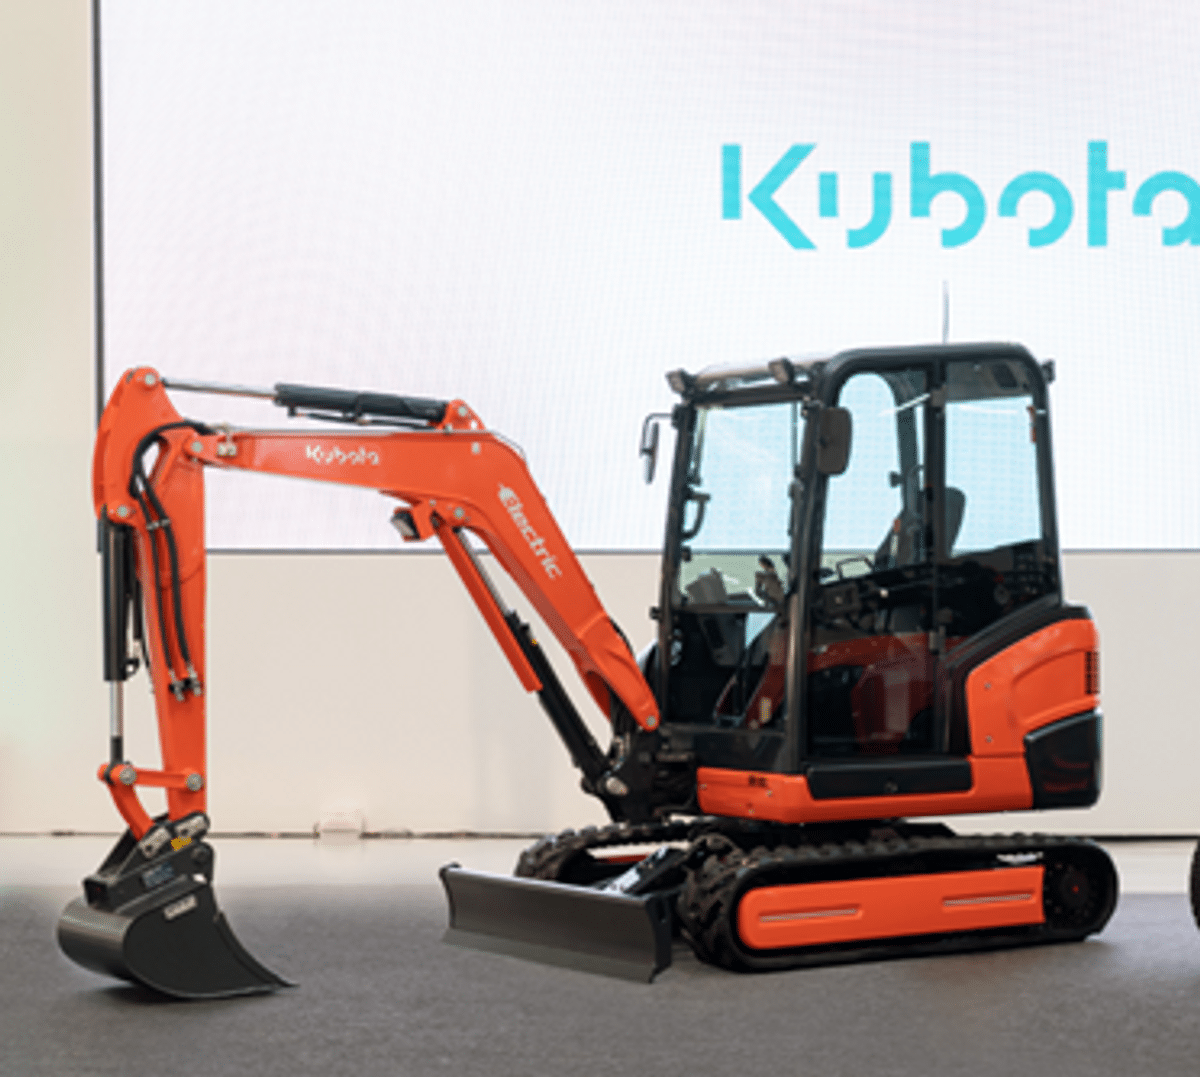 Kubota Reveals Electric Mini Excavator